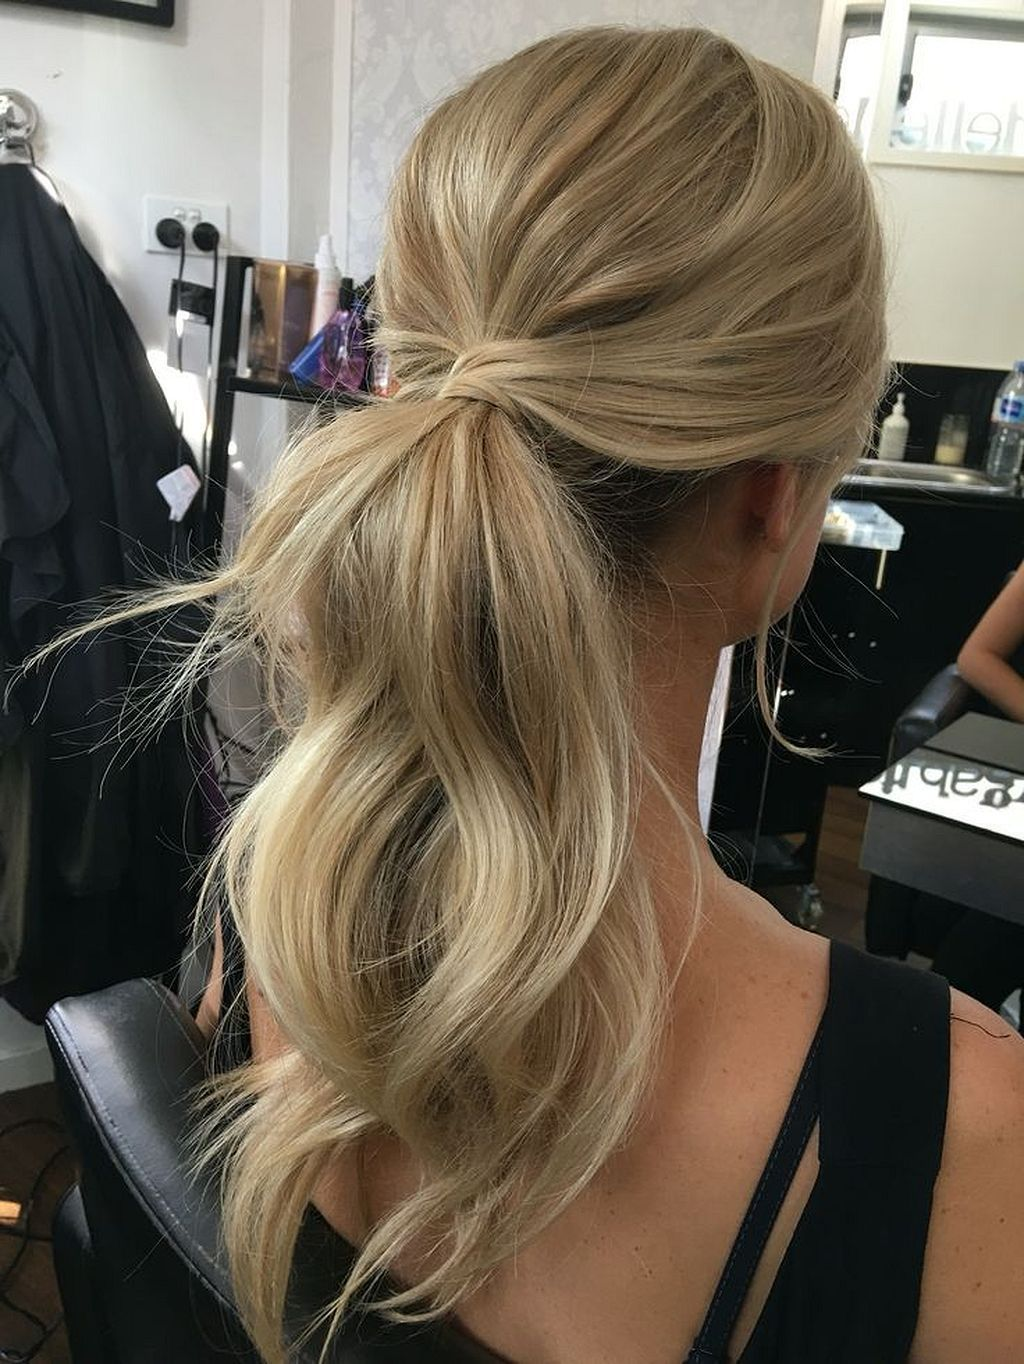 Nice perfect prom updo wedding hairstyle inspiration